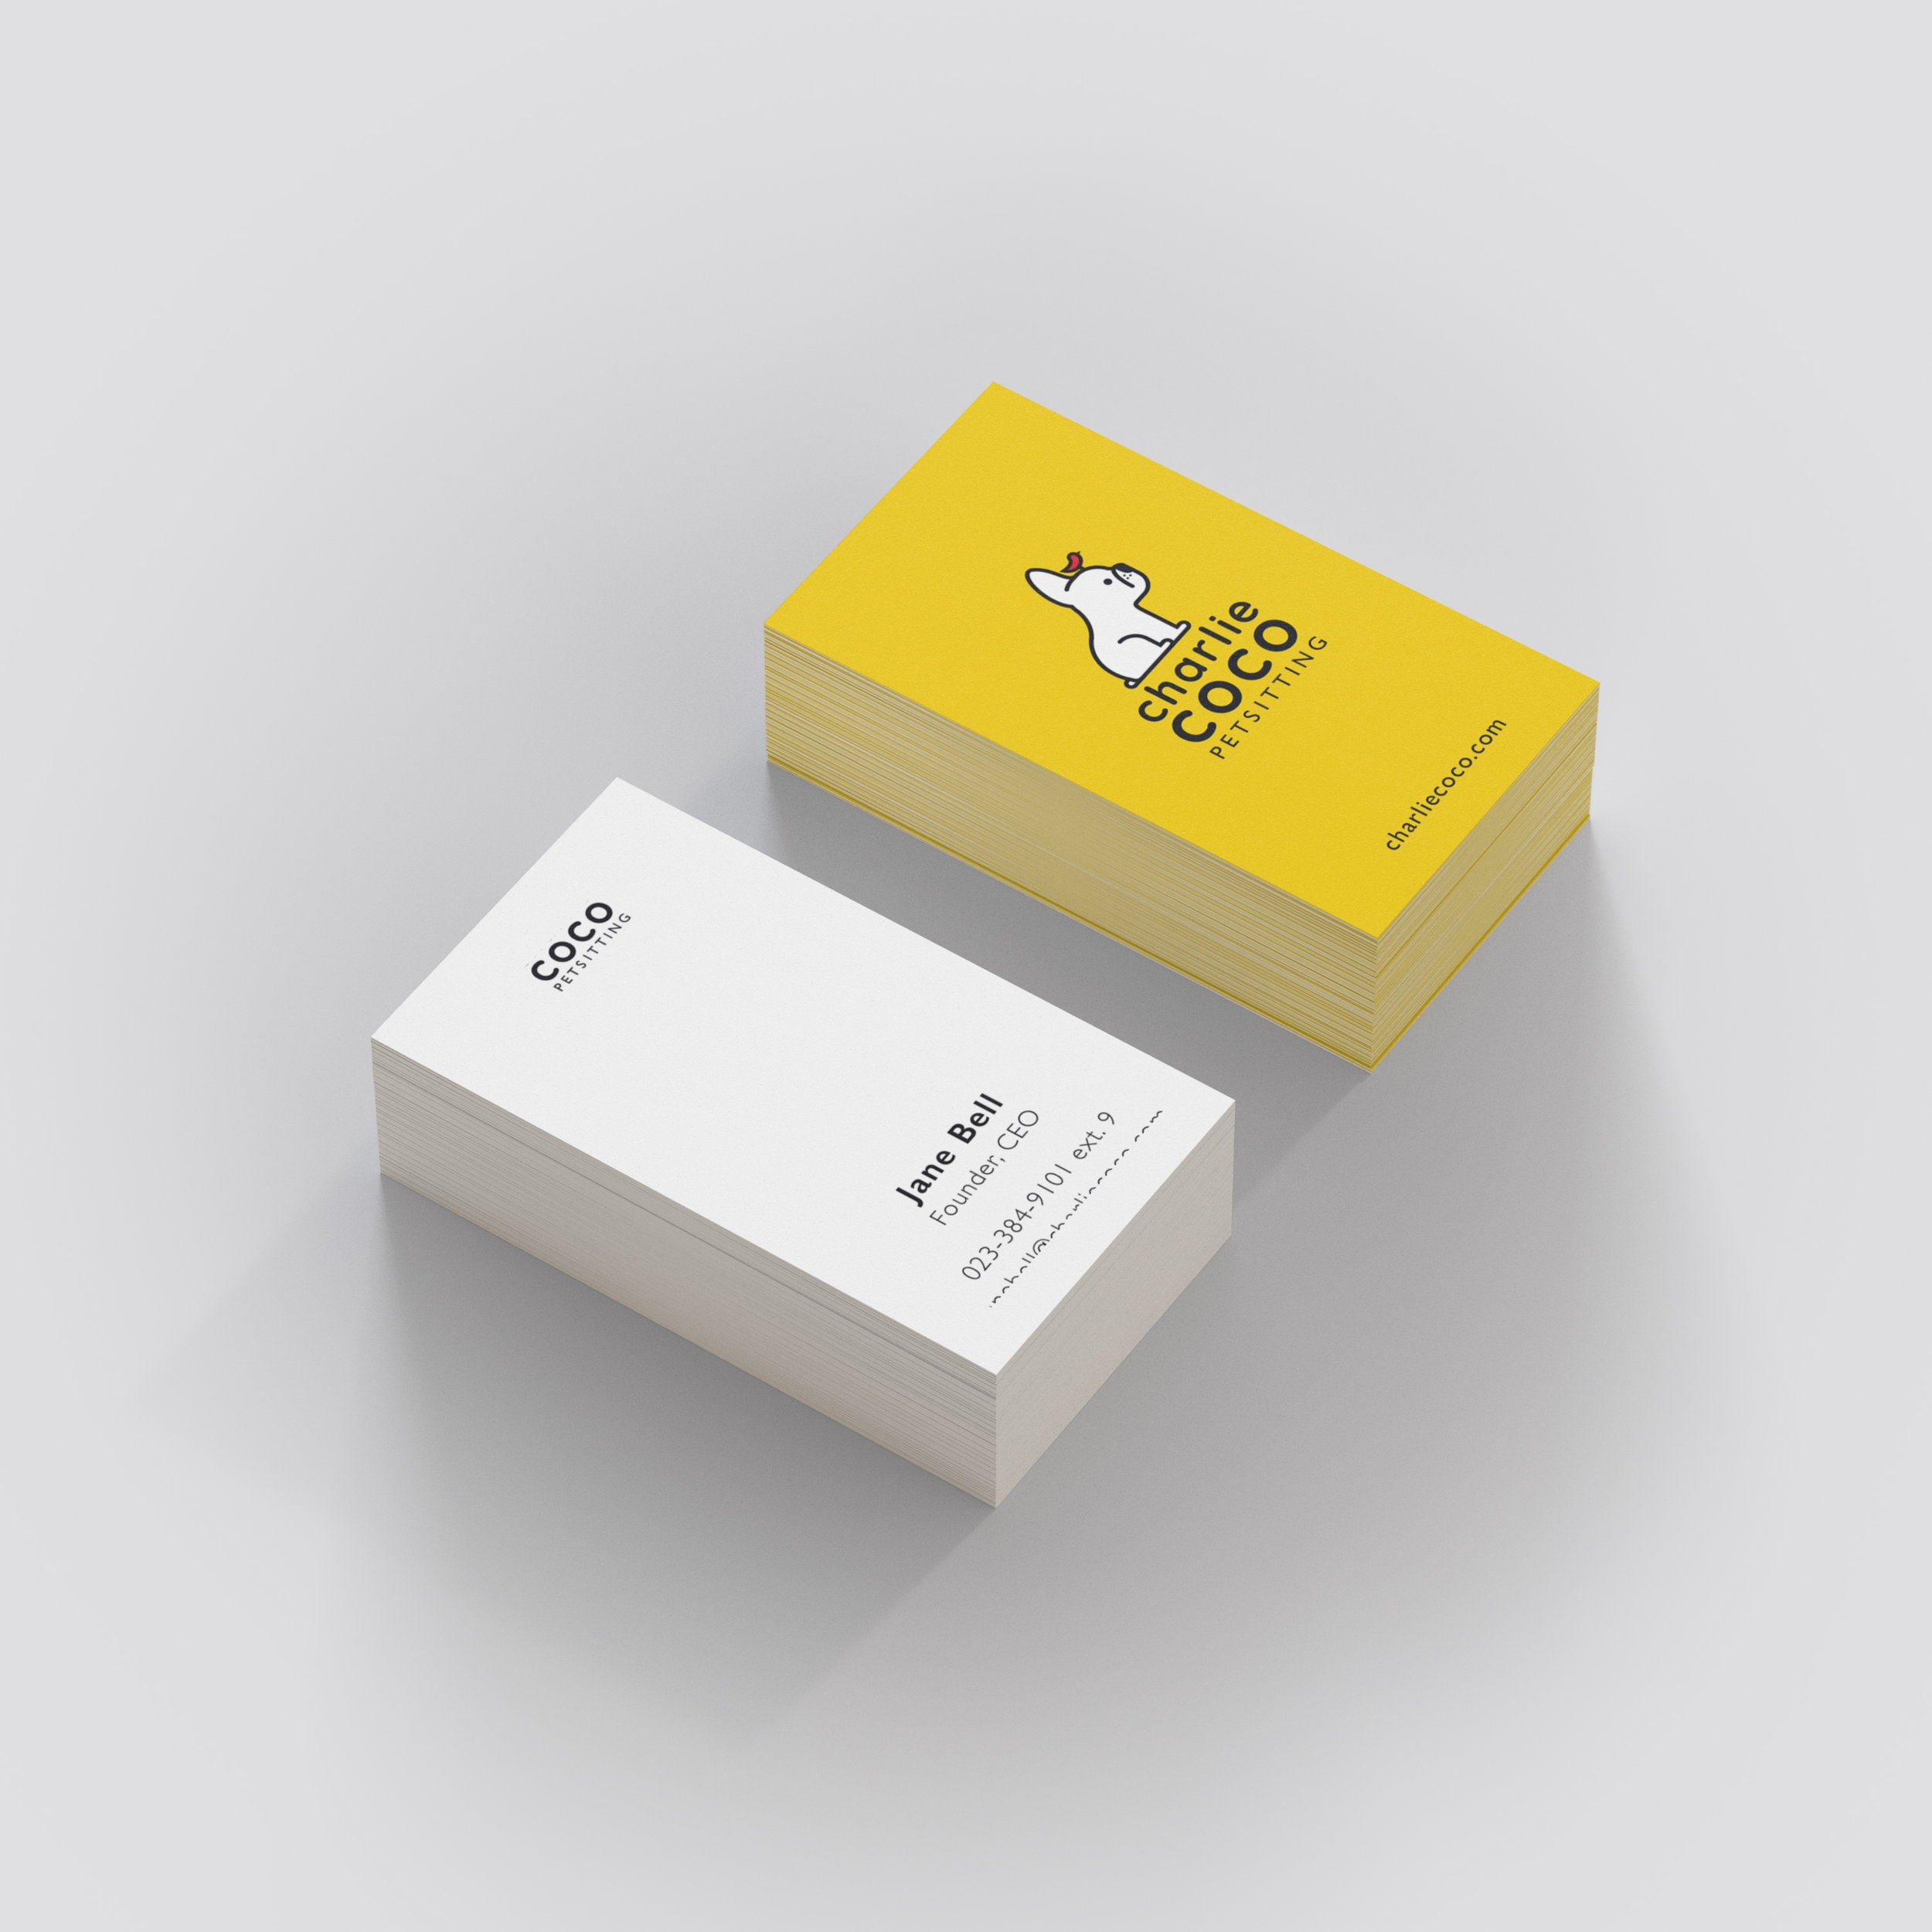 charliecoco_folio_businesscard_mockup_for website.jpg